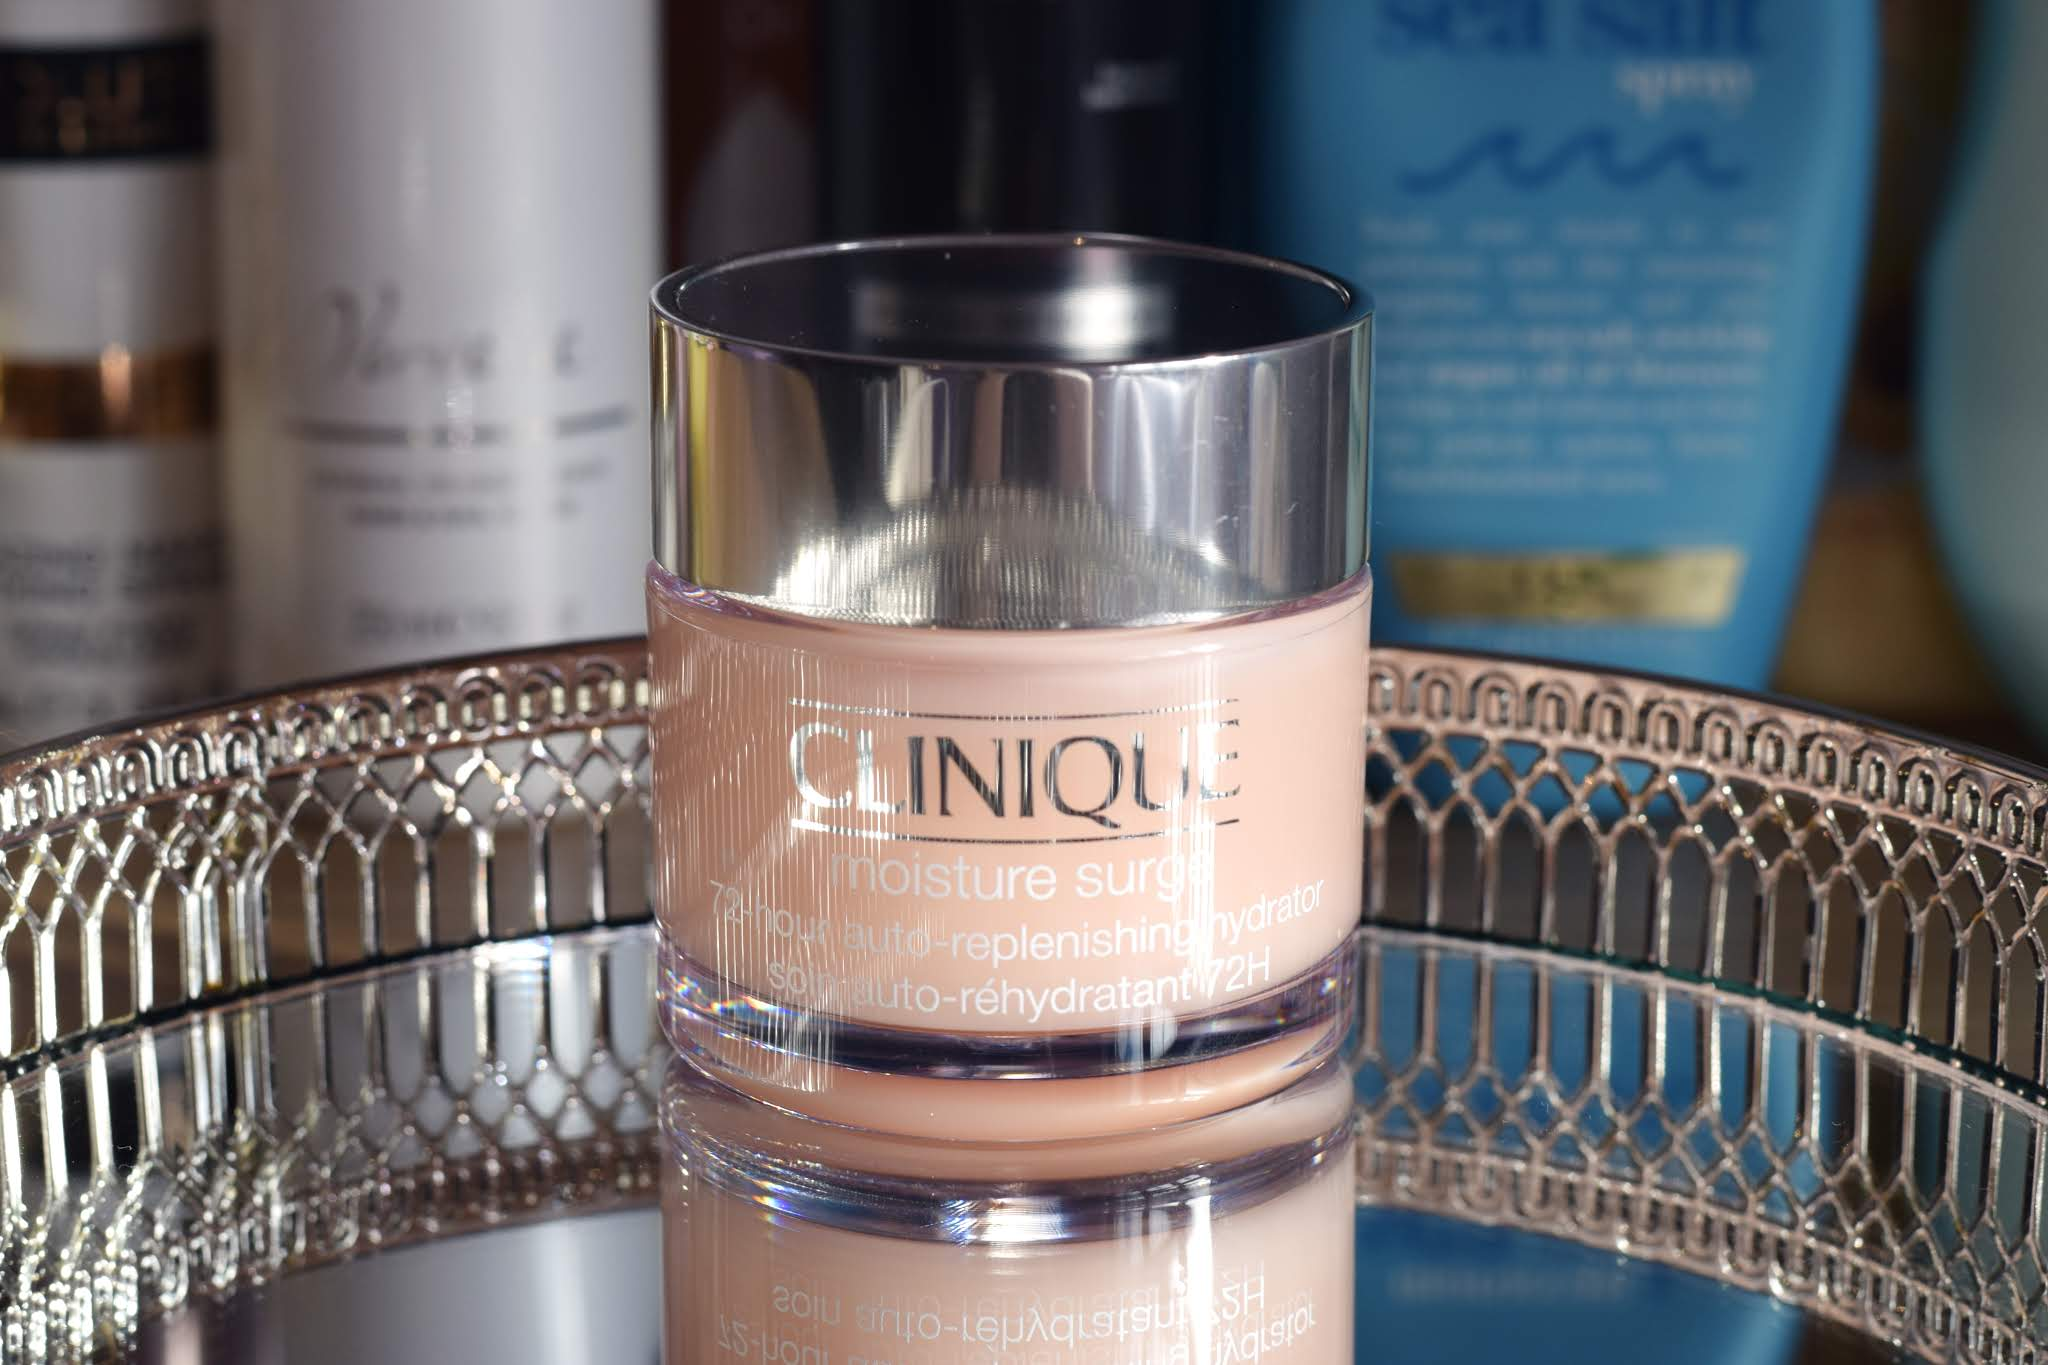 a pot of Clinique Moisture Surge standing on a mirrored tray